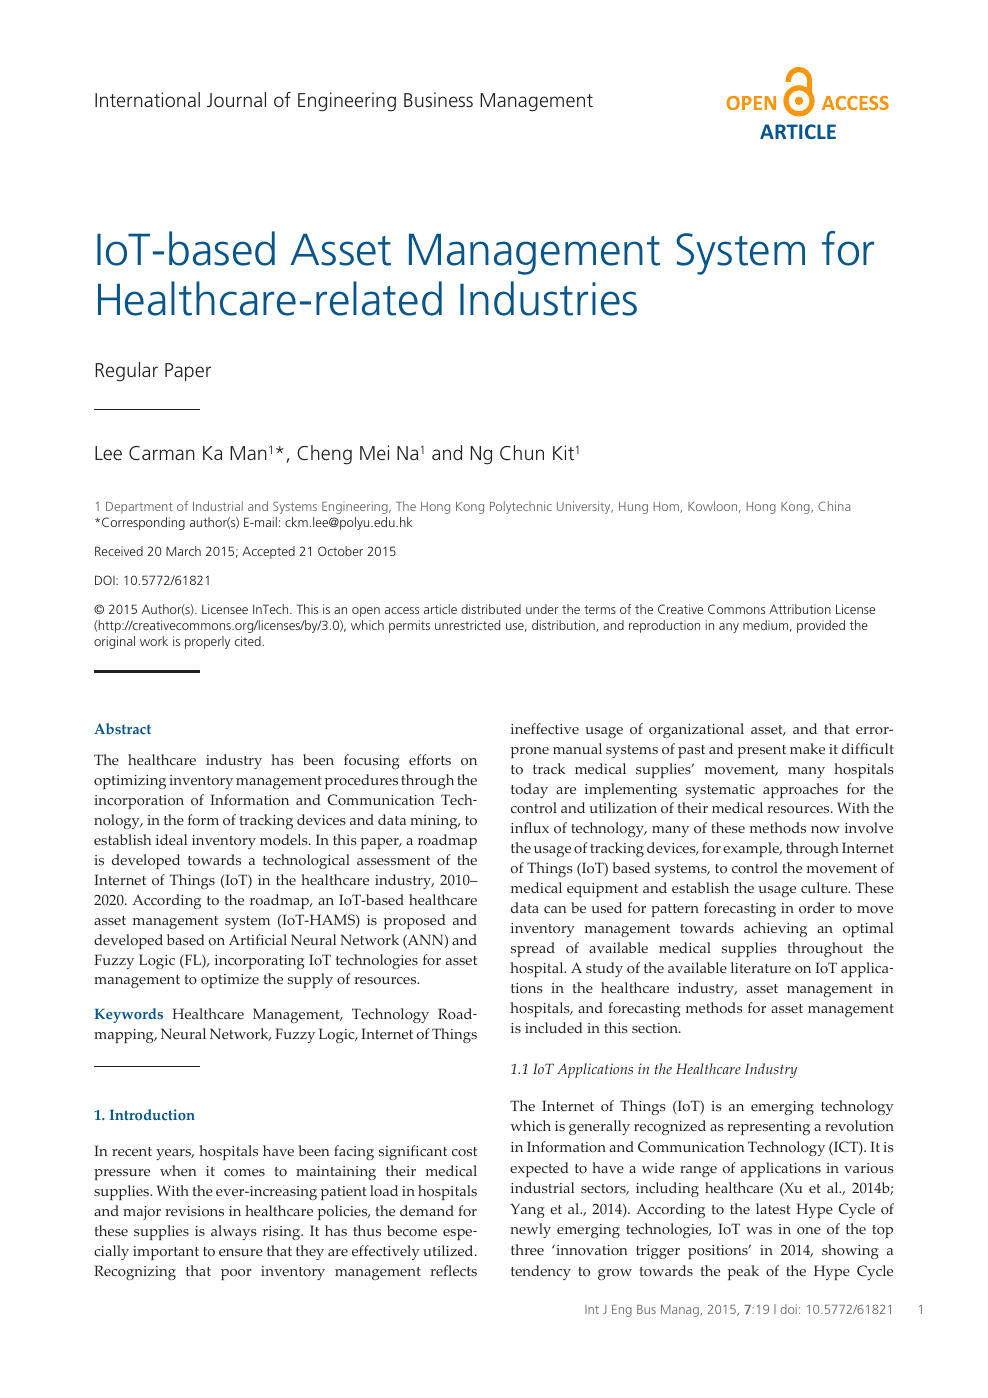 IoT-Based Asset Management System for Healthcare-Related